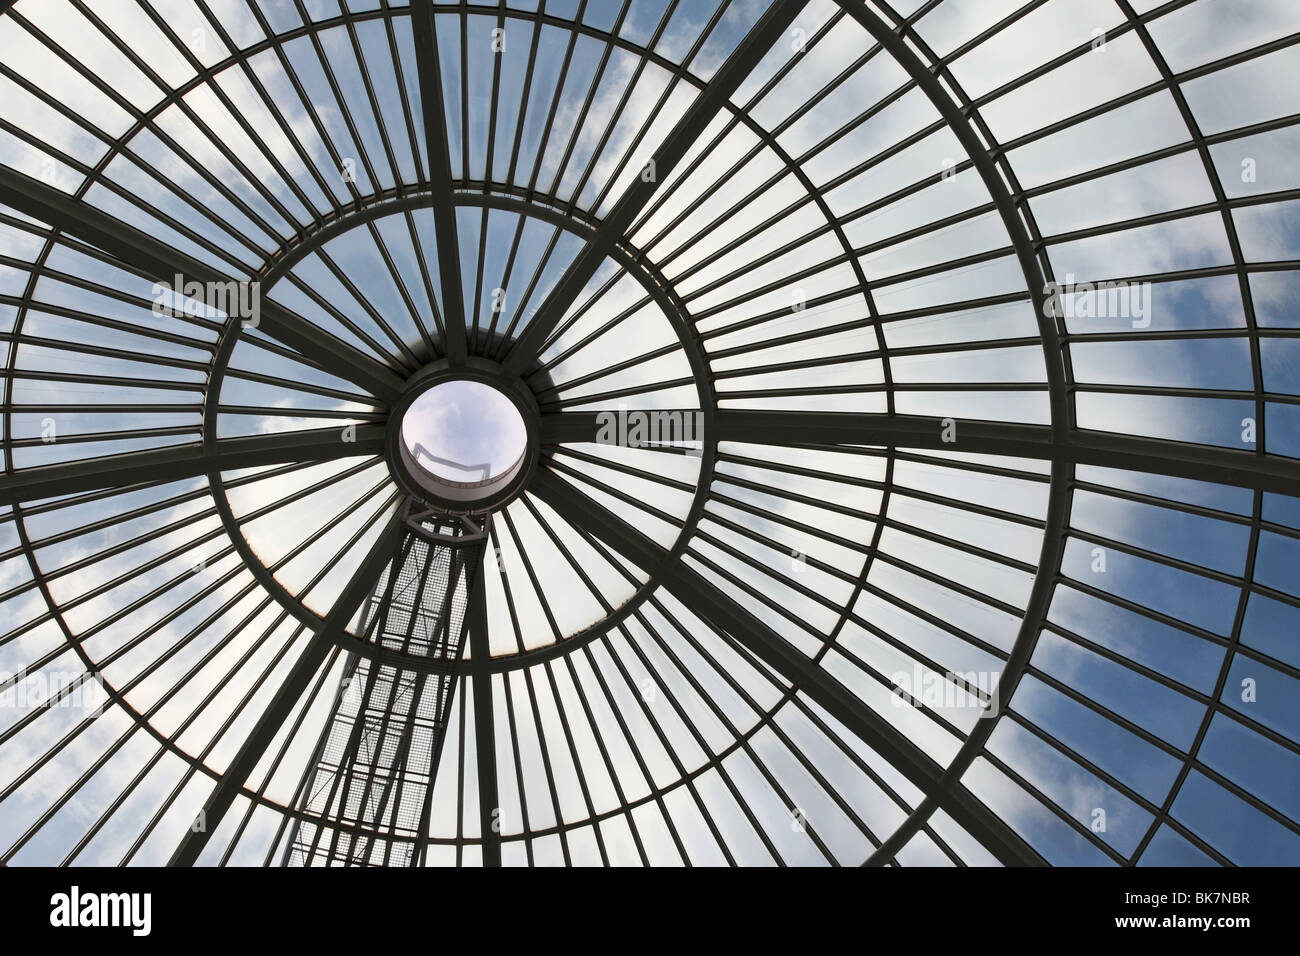 Dome roof in Canary Wharf shopping Mall. - Stock Image